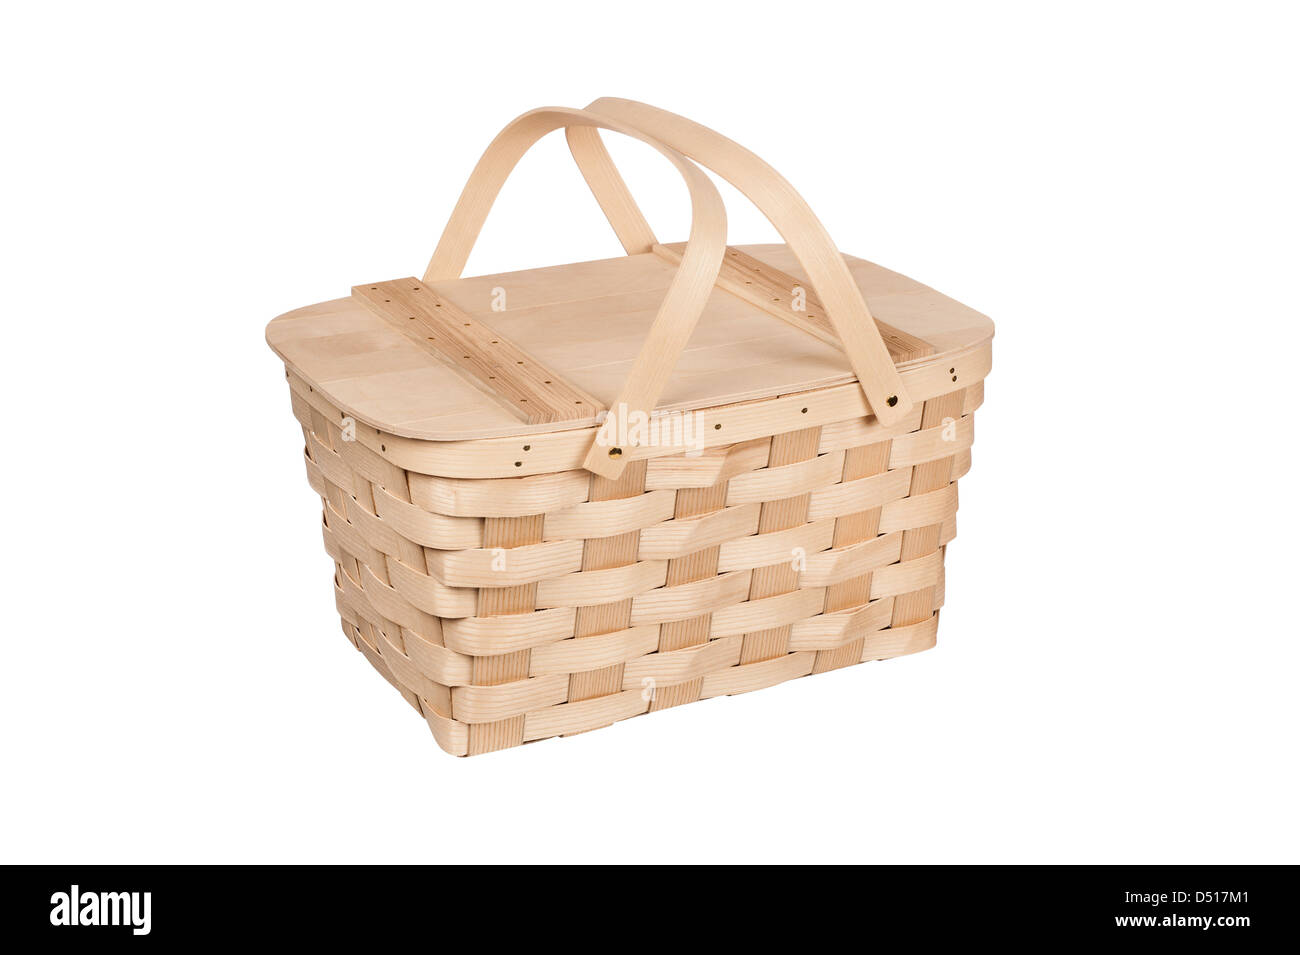 White wicker baskets with handle - A New Wicker And Wood Picnic Basket With Lid And Handles Isolated On White